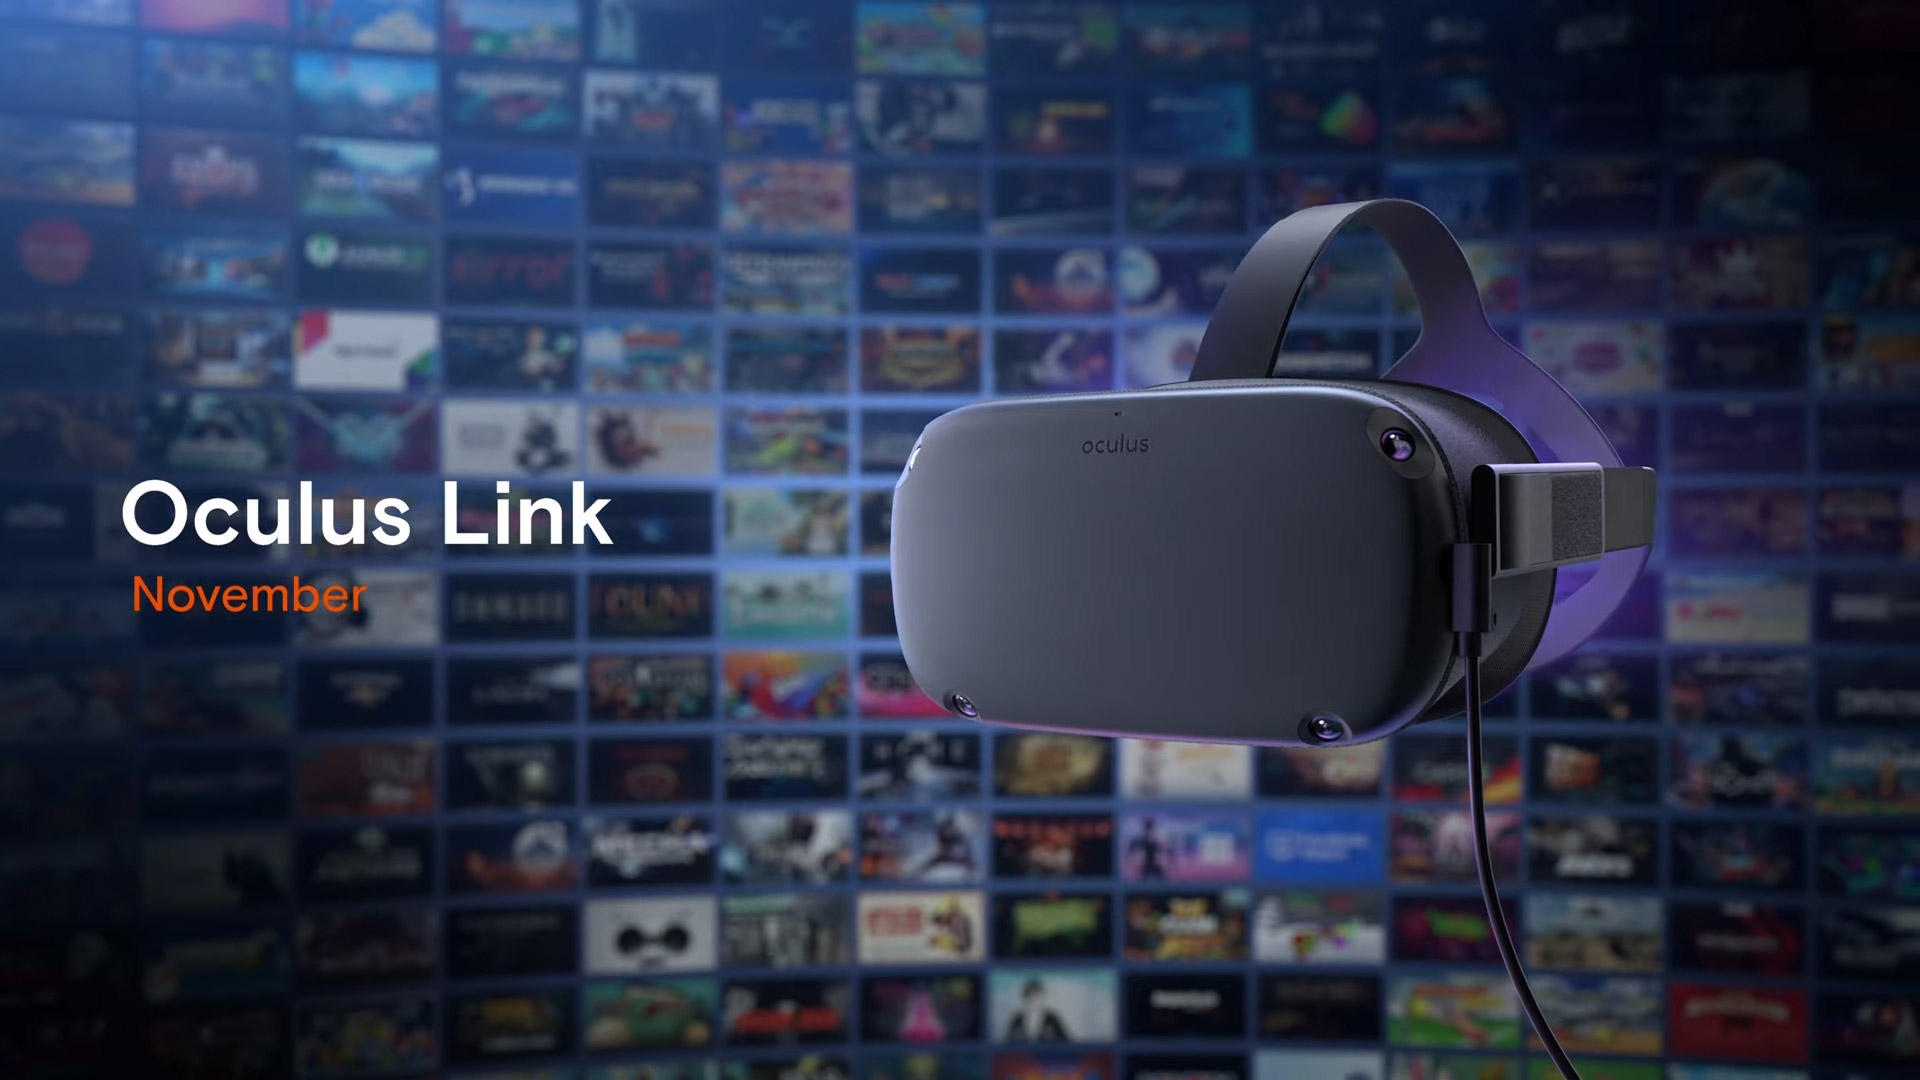 Oculus Releases Beta Support for Link, Turning Quest into a PC VR Headset